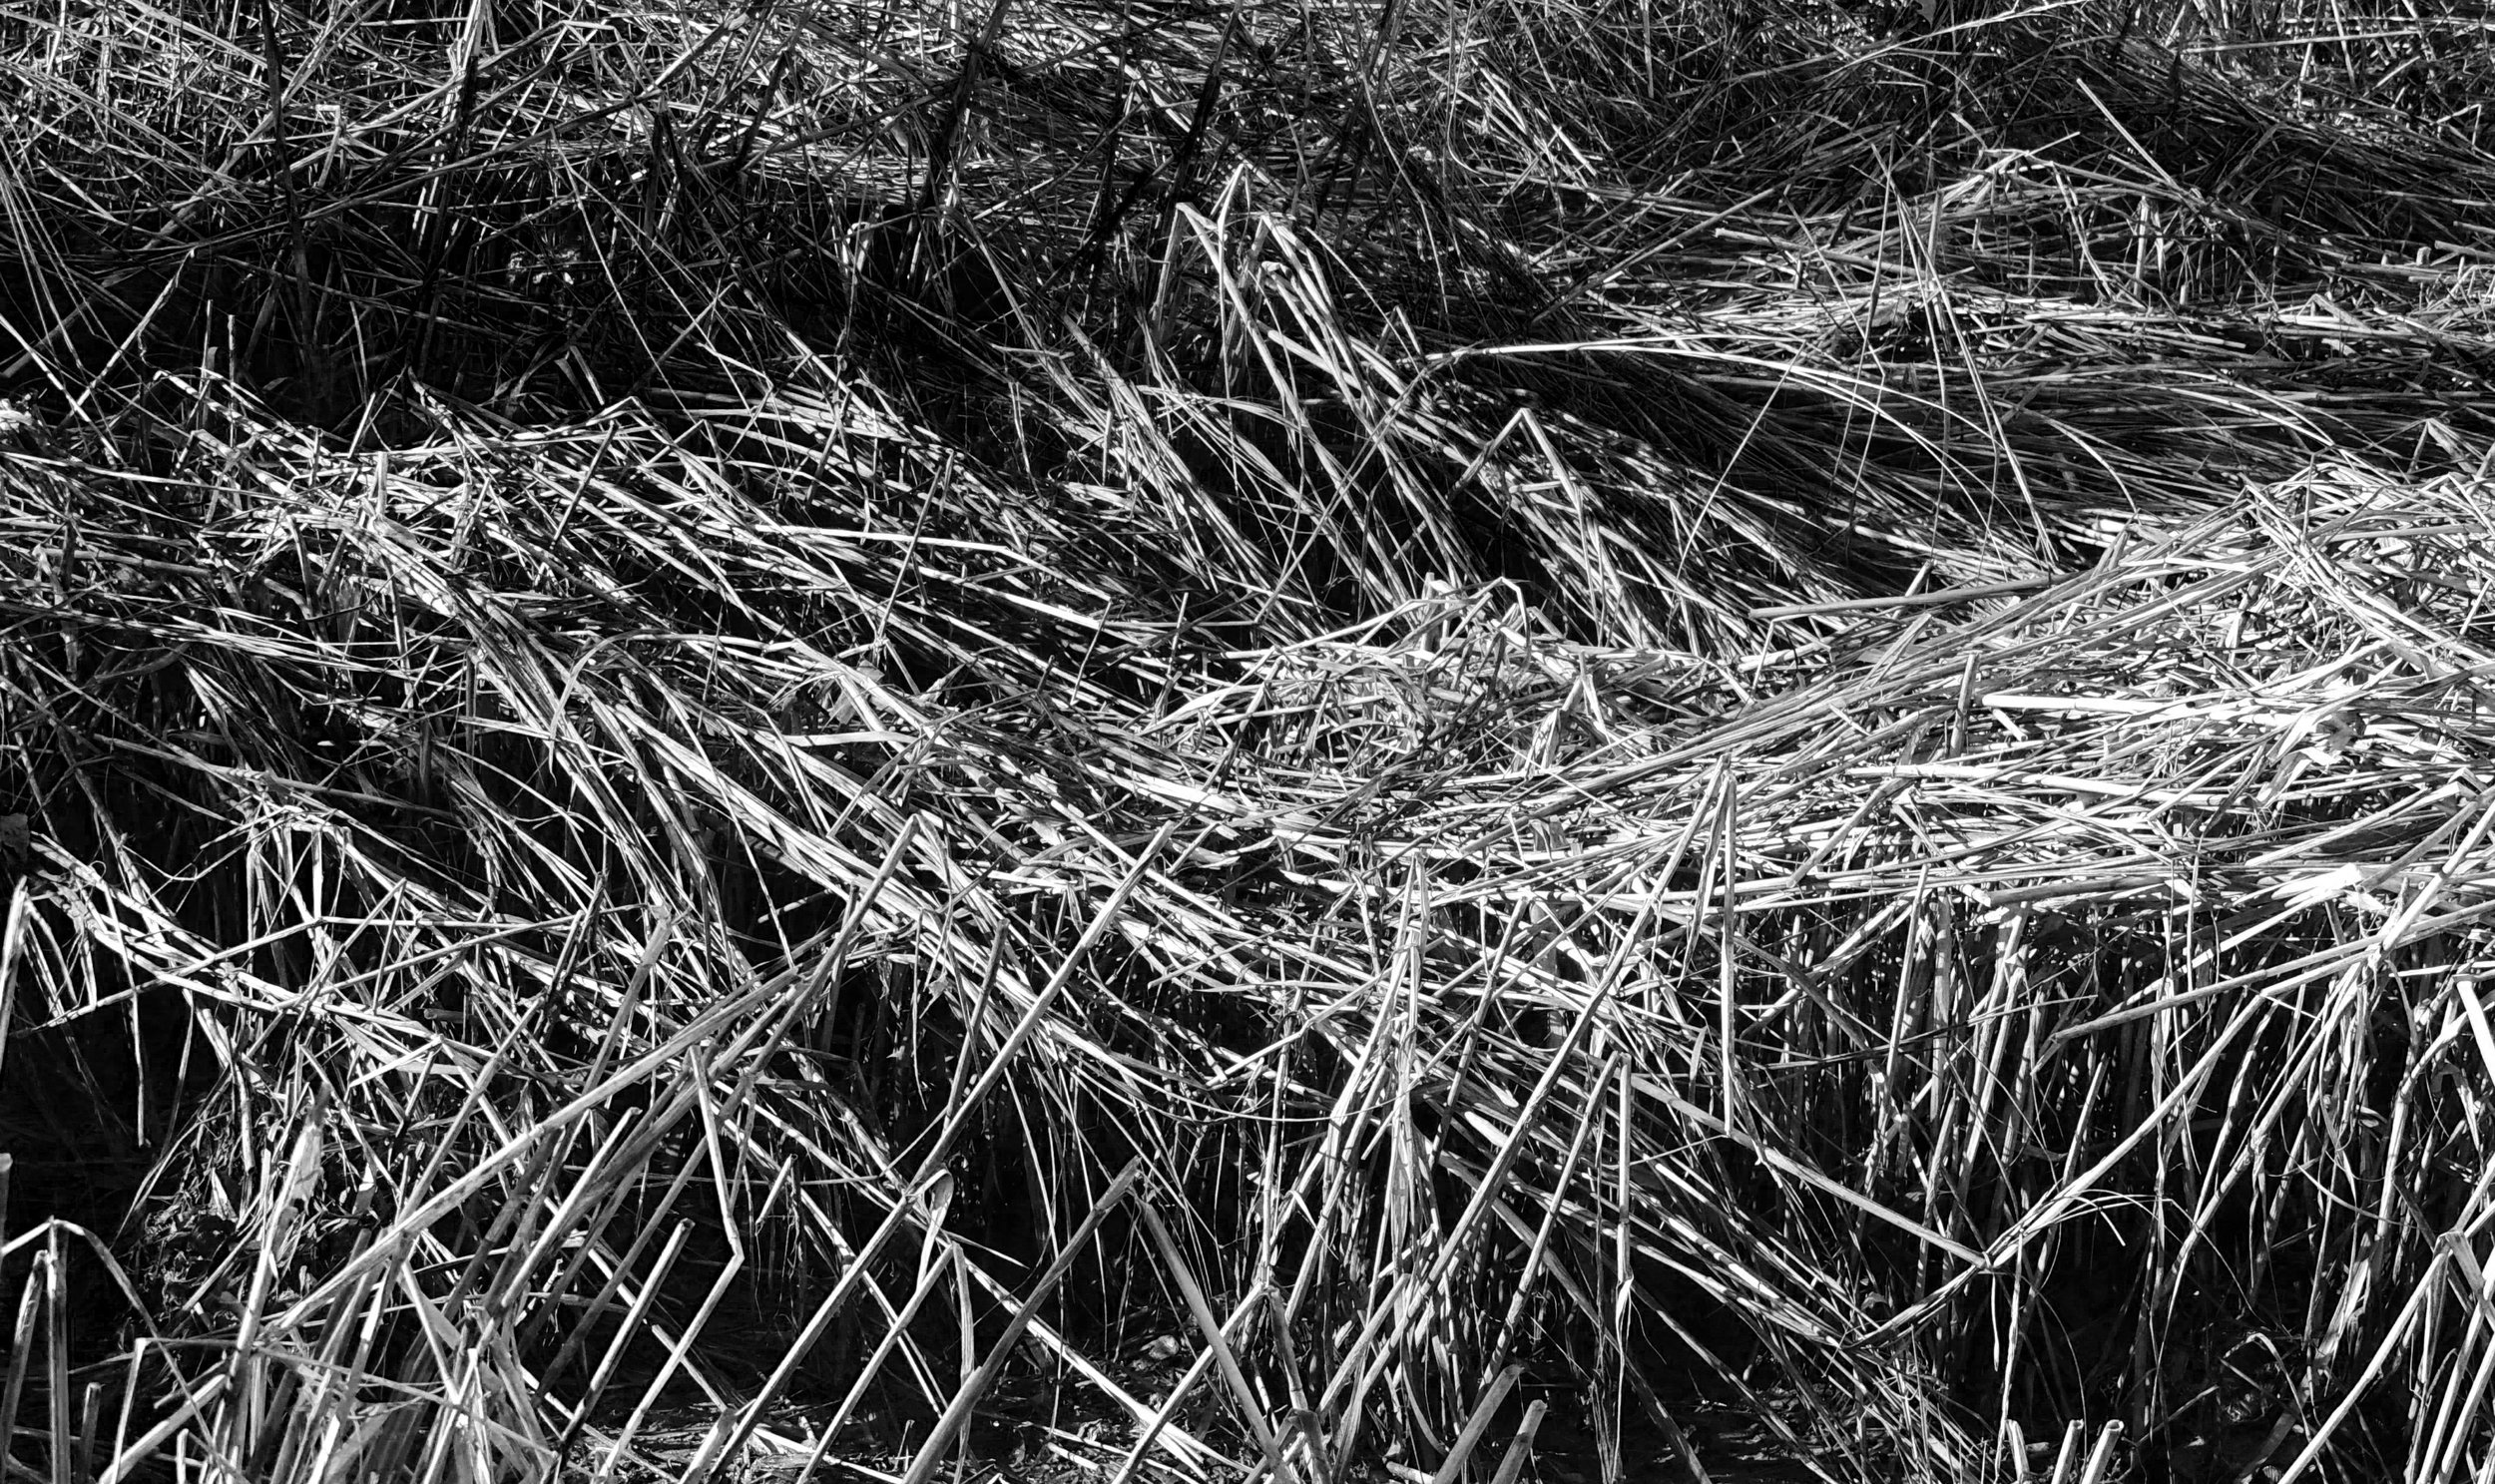 Black and White beach Straw photograph